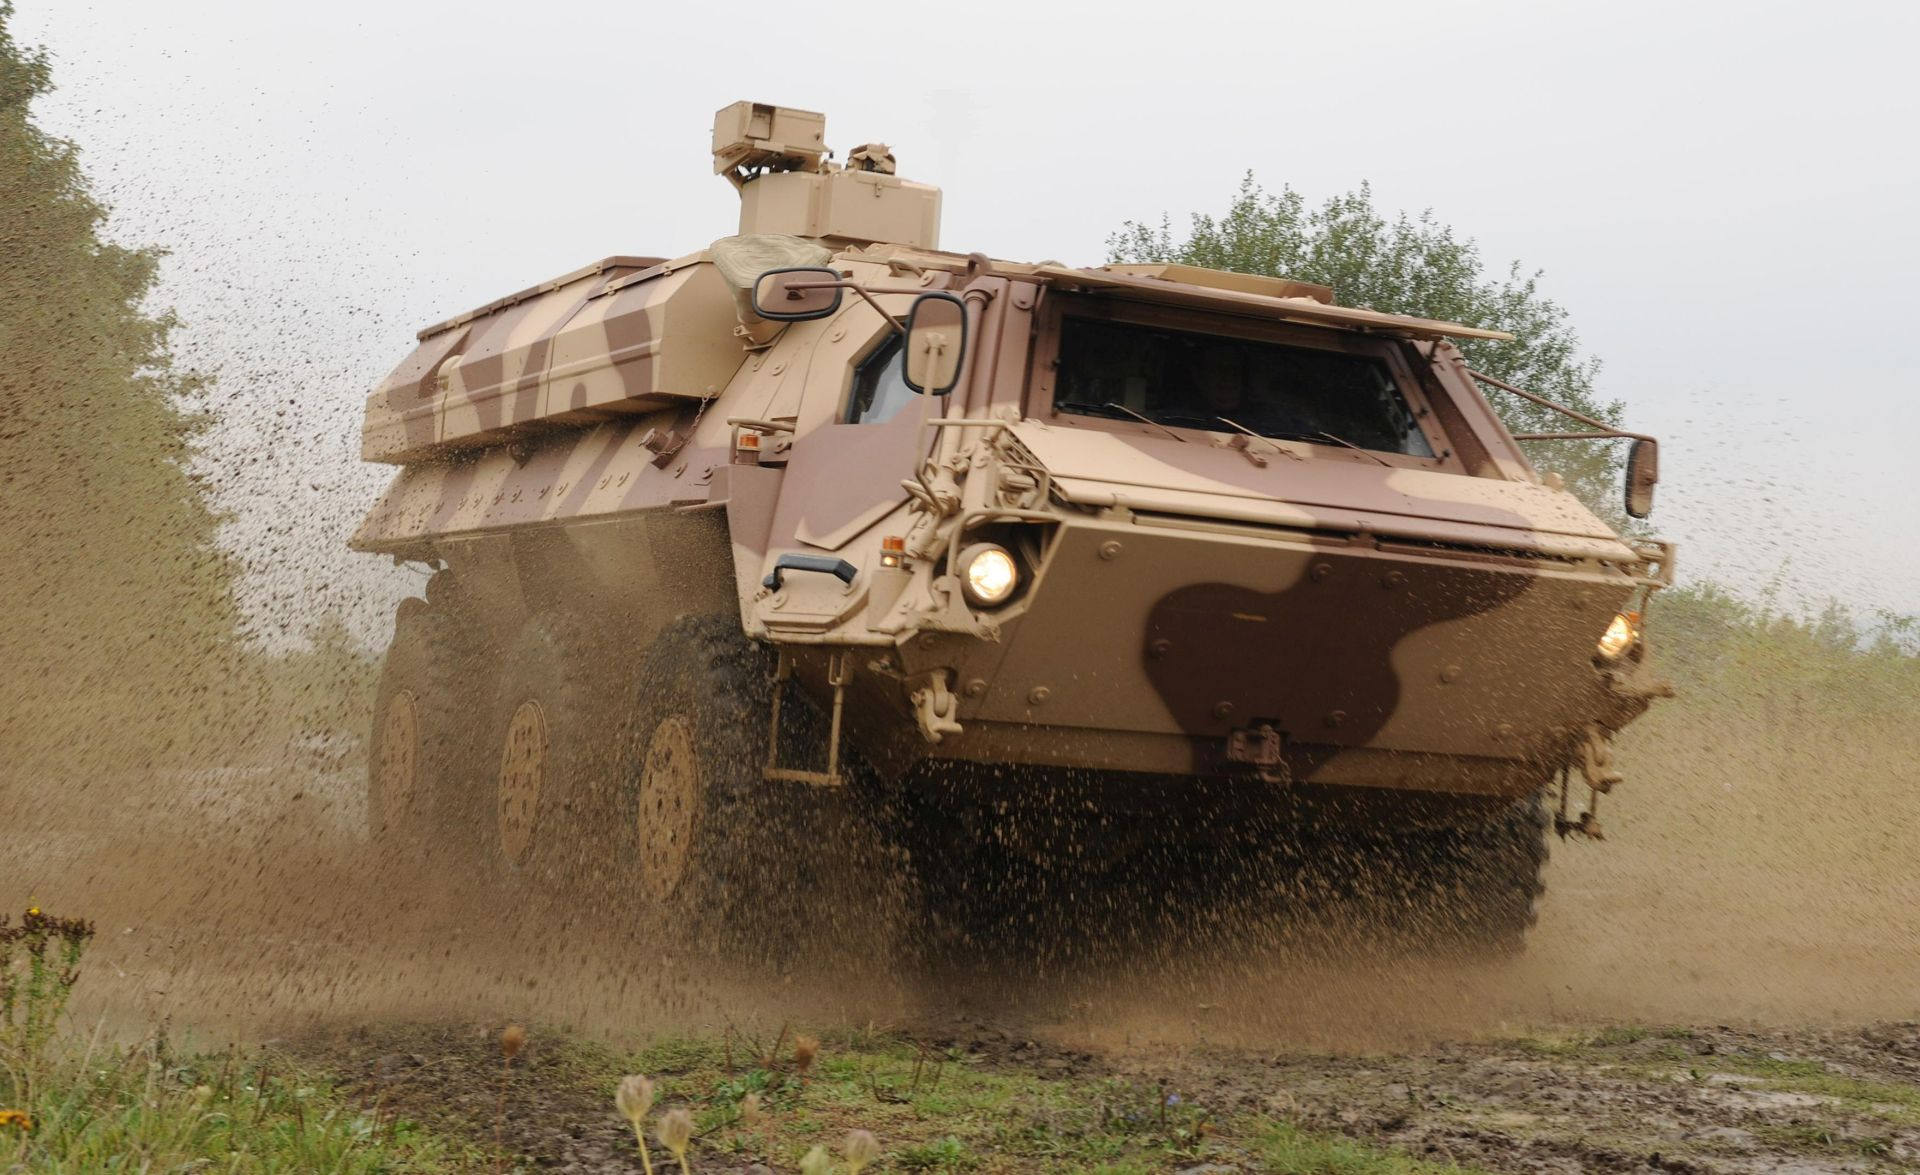 Rheinmetall's Fox NBC reconnaissance vehicle